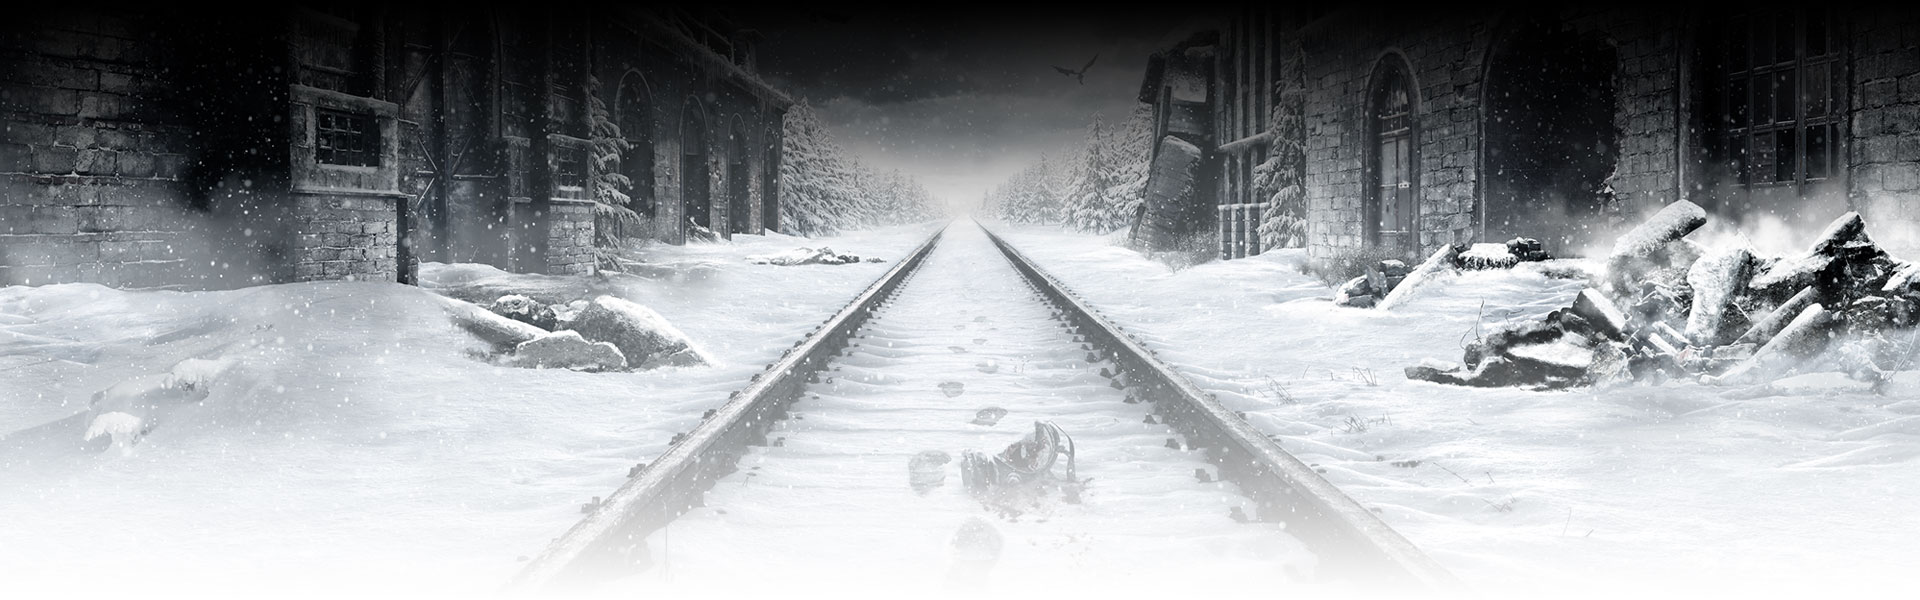 Snow-covered rail road track with footprints in the snow.